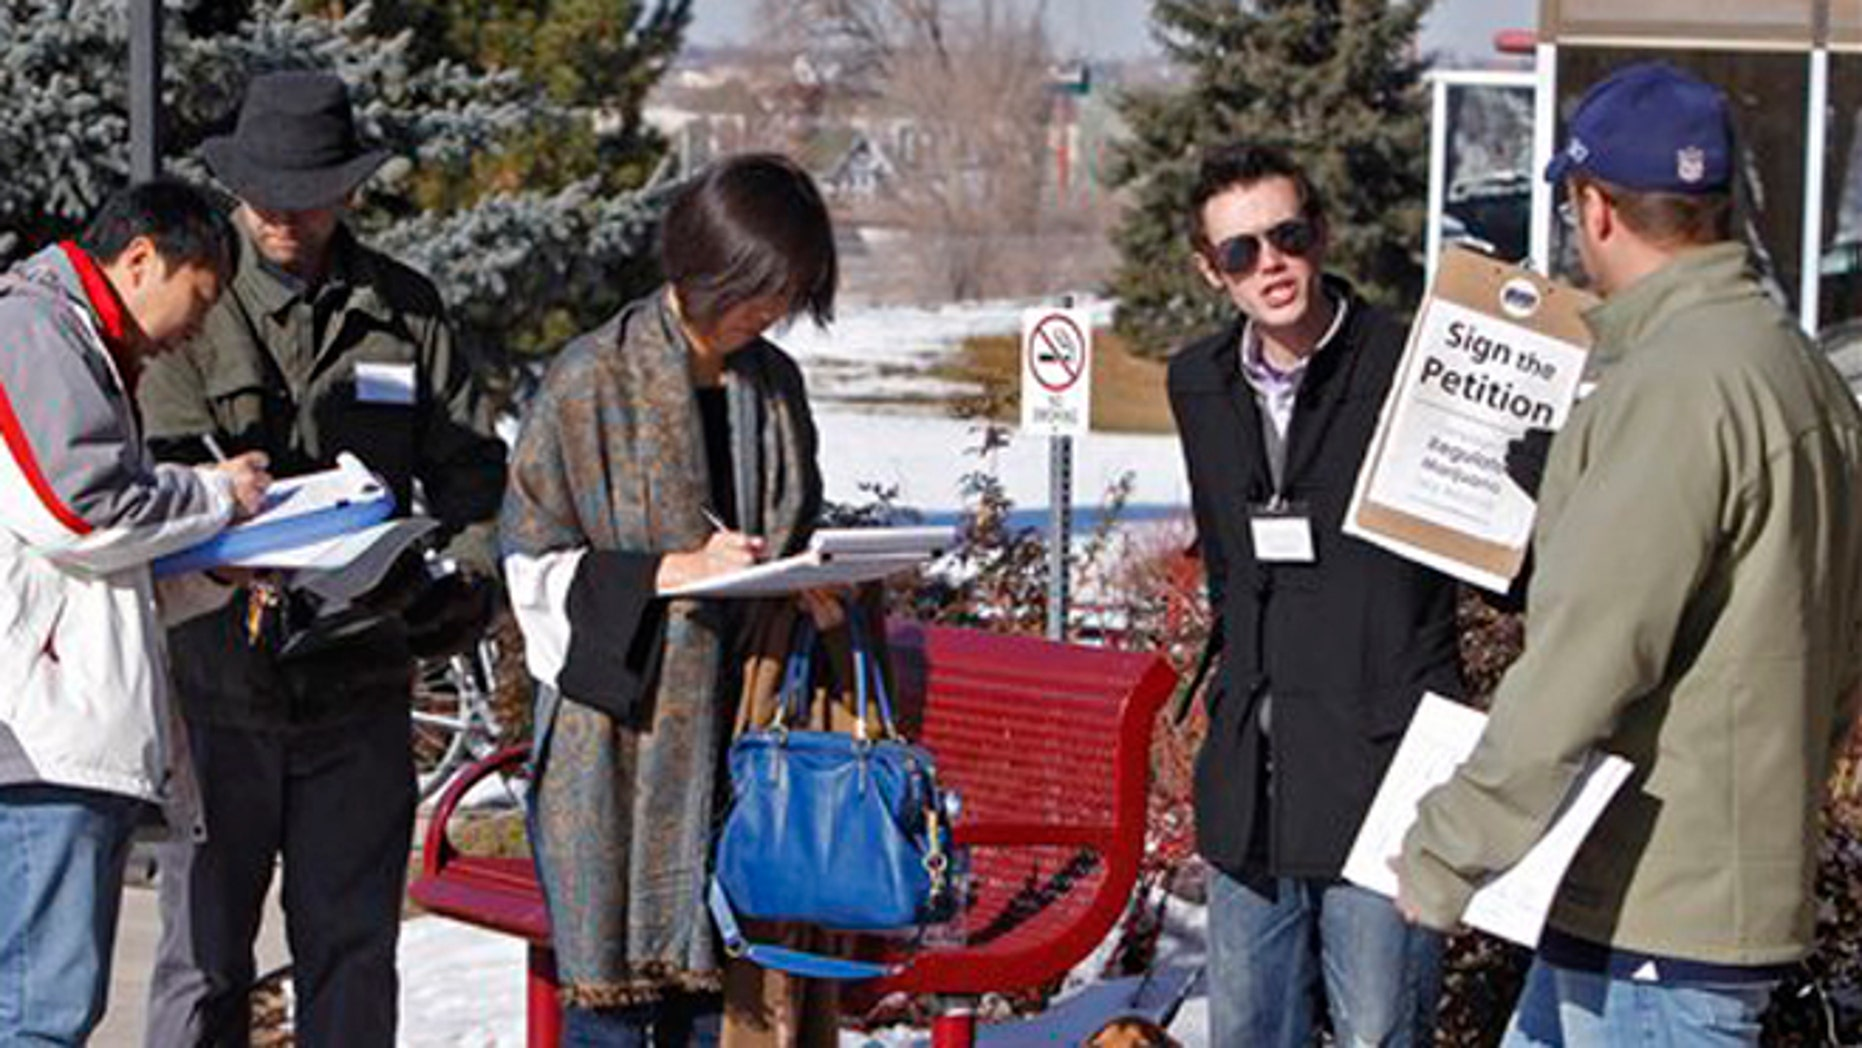 FILE: Dec. 8, 2011: Volunteers  collect signatures on a petition to legalize marijuana in Colorado.